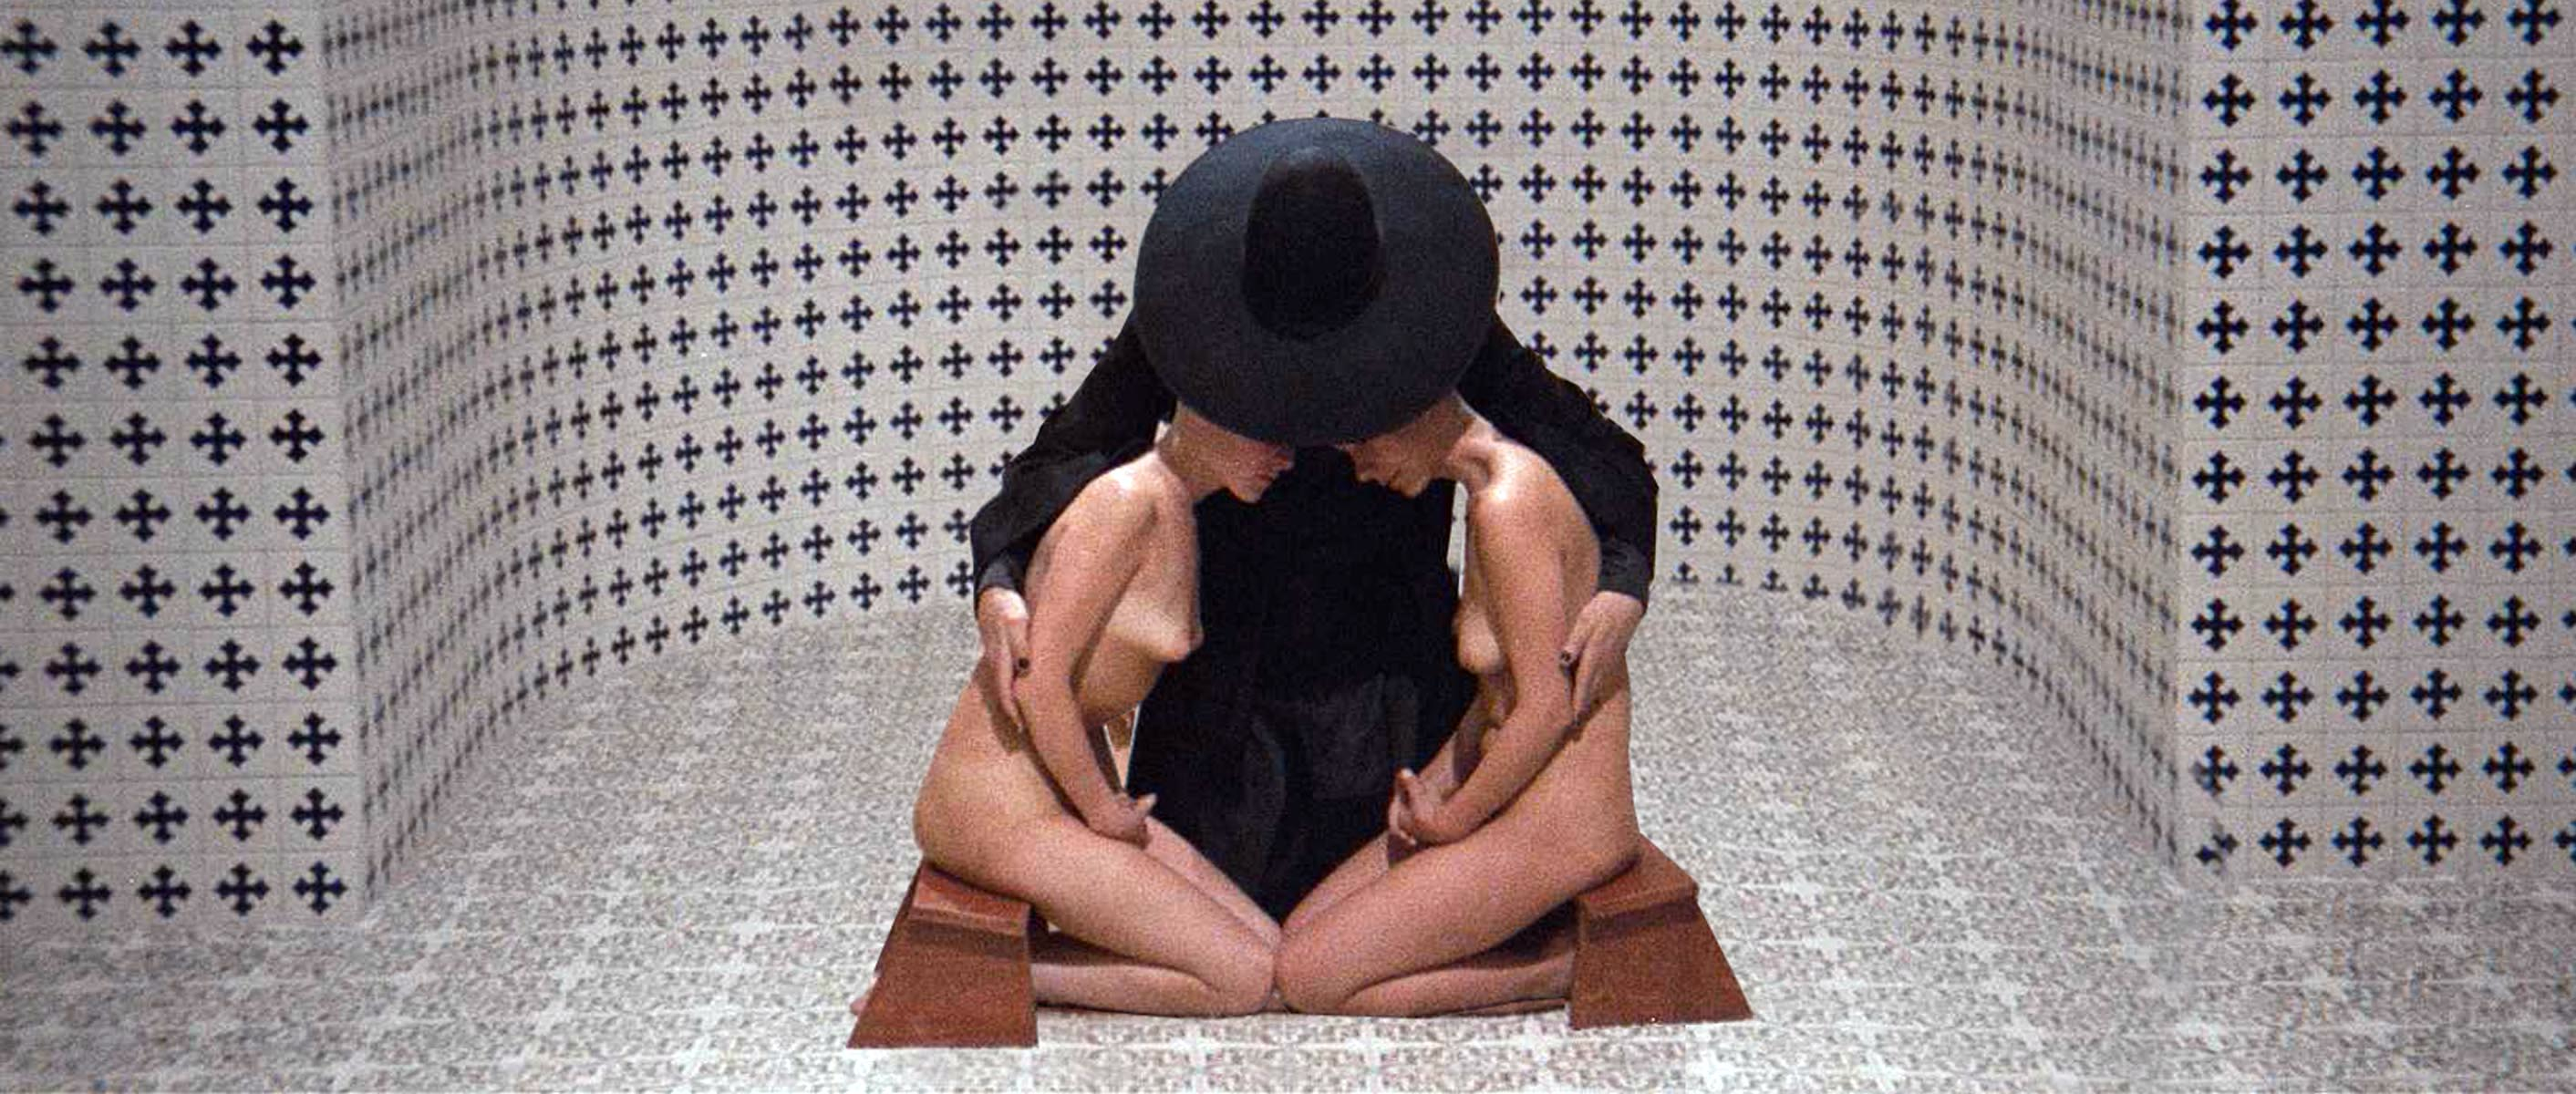 Still from Jodorowsky's Holy Mountain